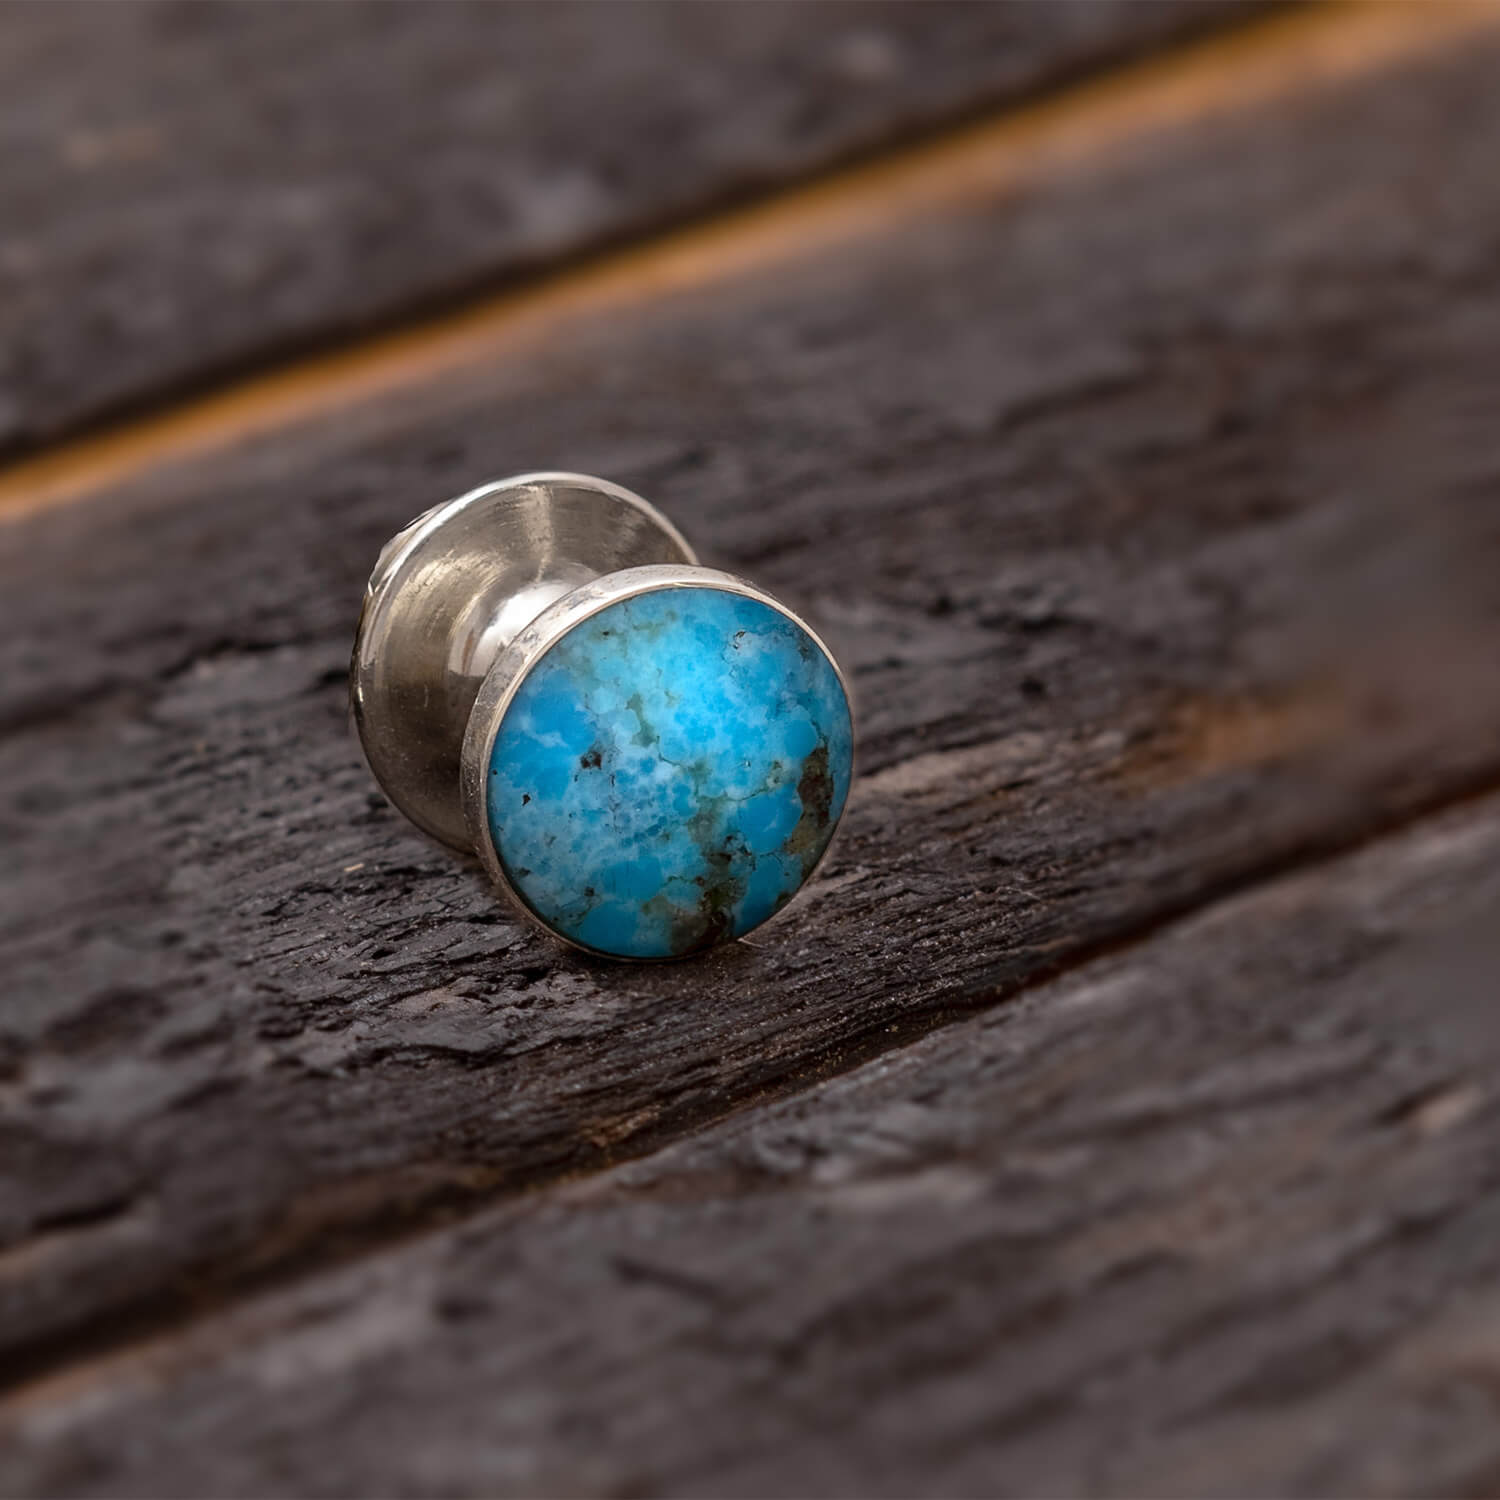 Turquoise Tie Tack With Sterling Silver, Blue Turquoise Accessory-3987 - Jewelry by Johan